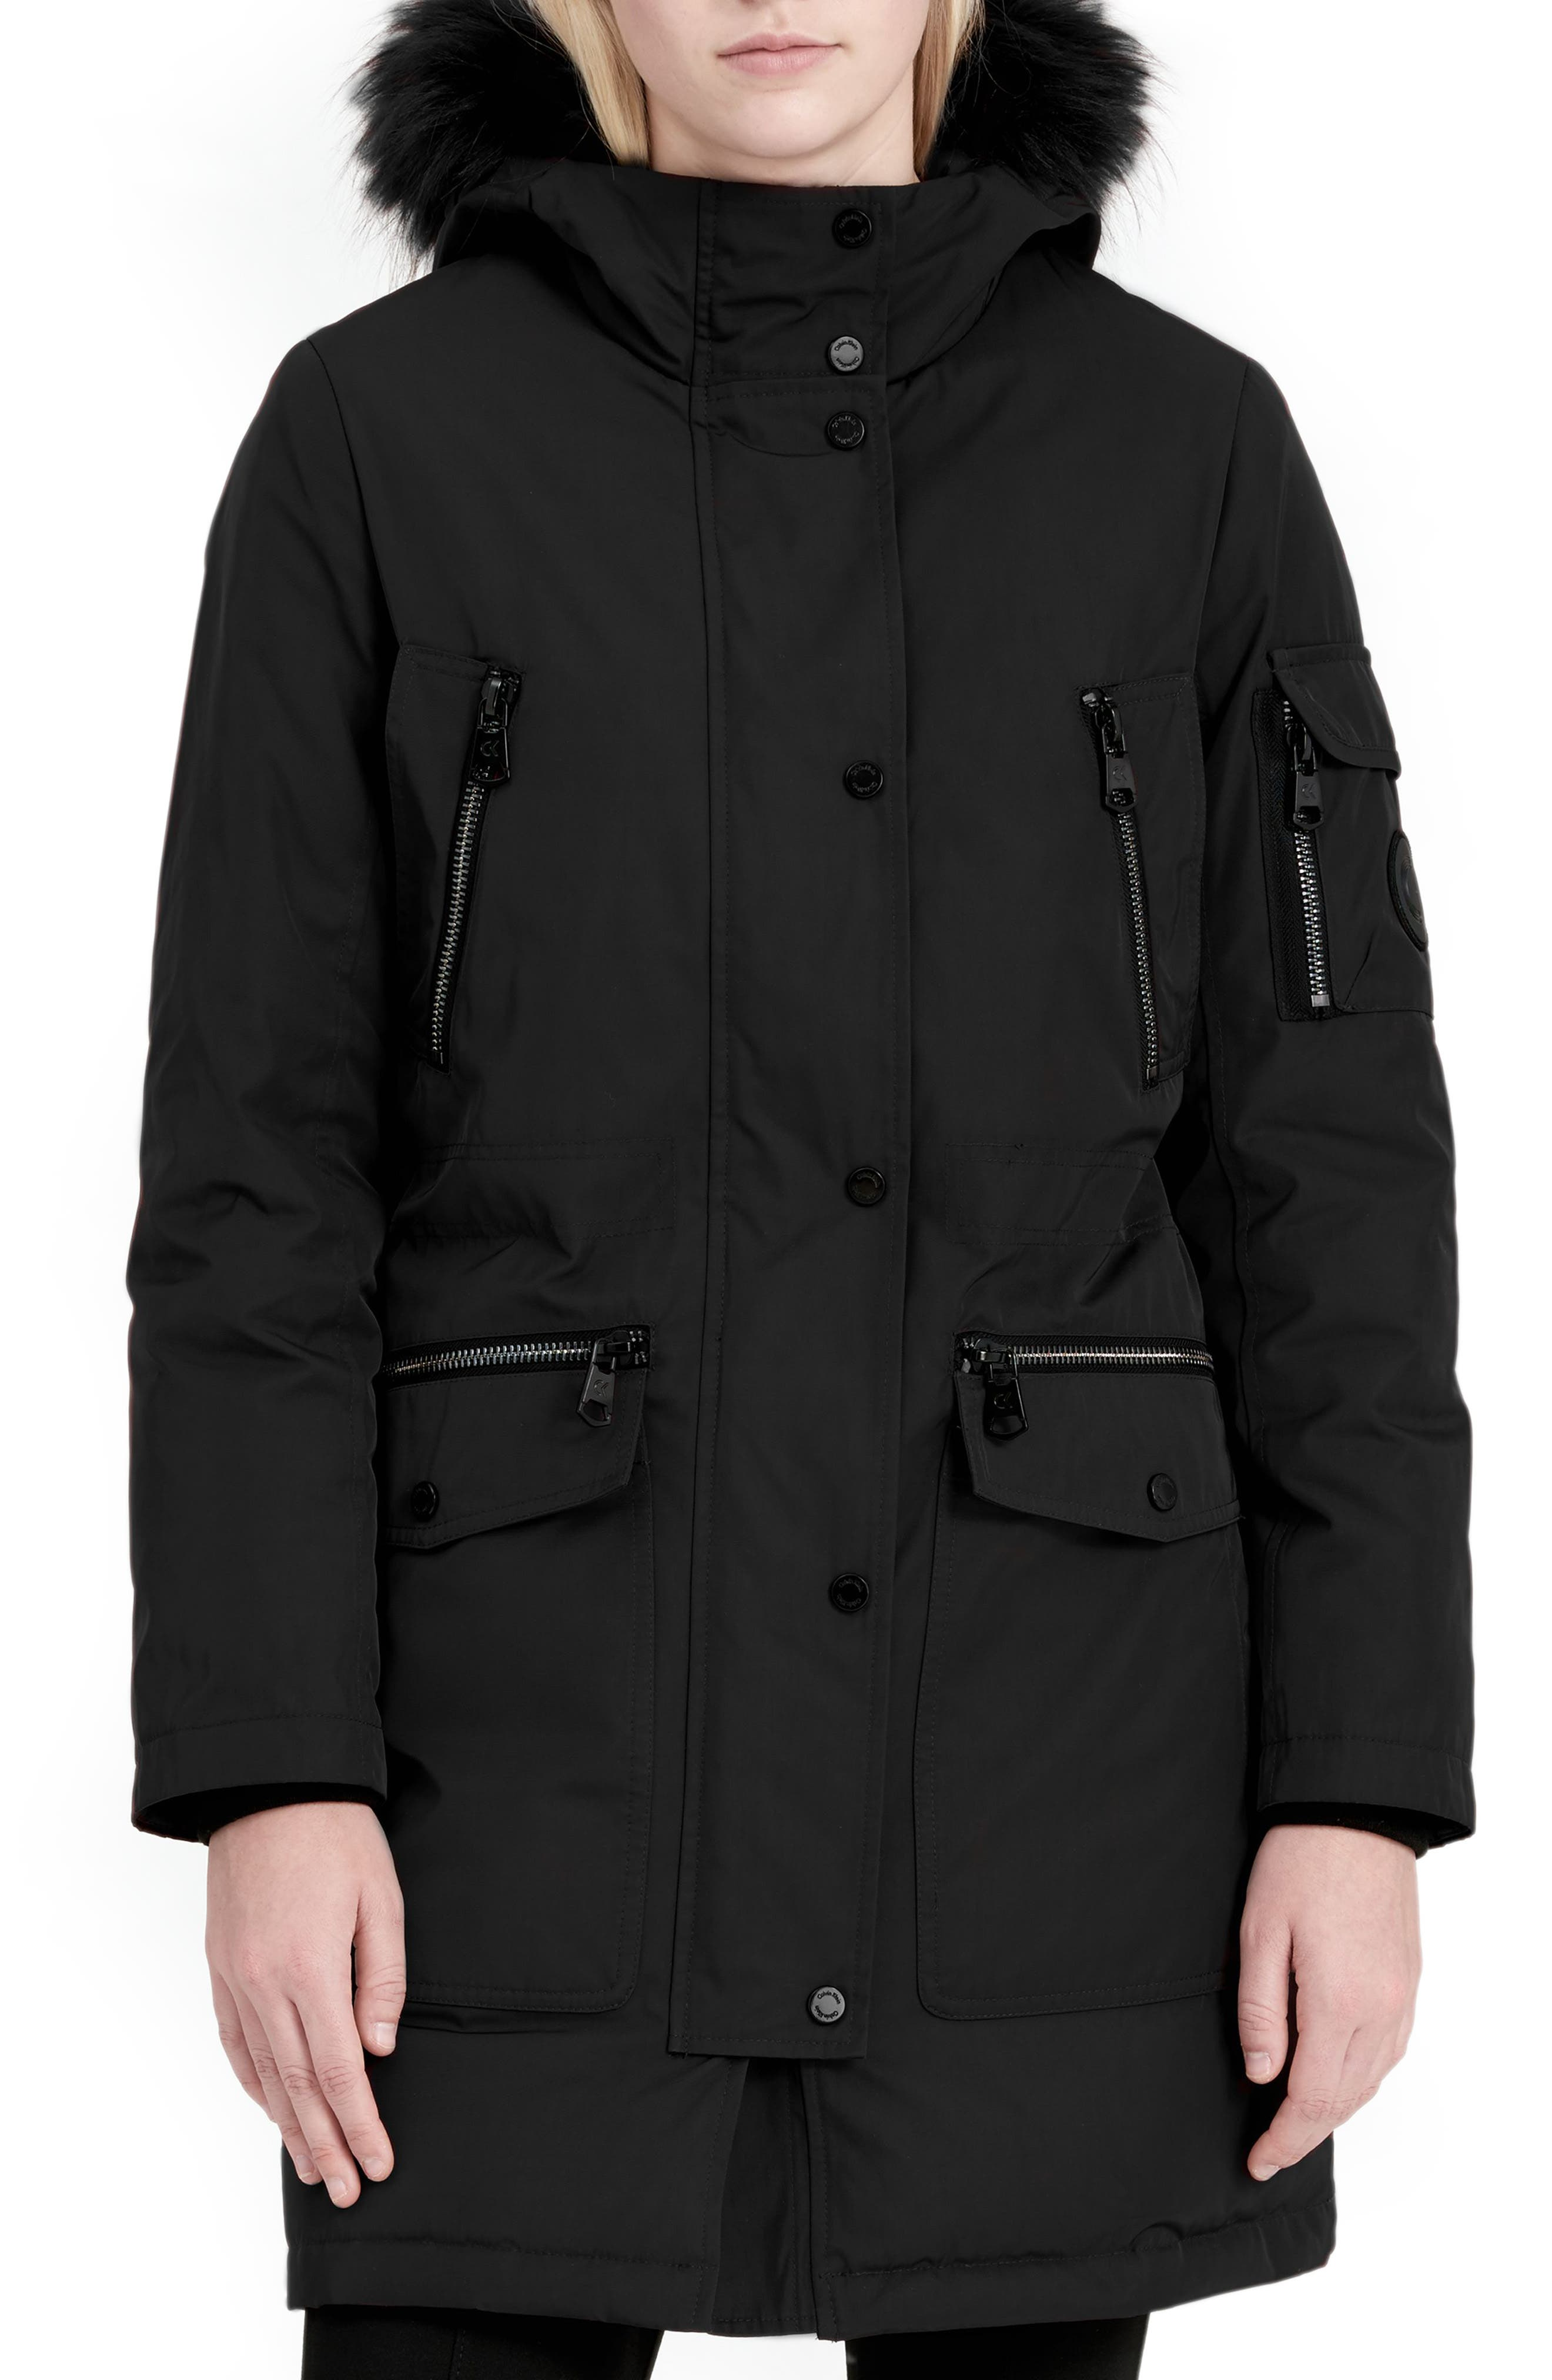 Expedition Hooded Down Parka with Faux Fur Trim,                         Main,                         color, Black